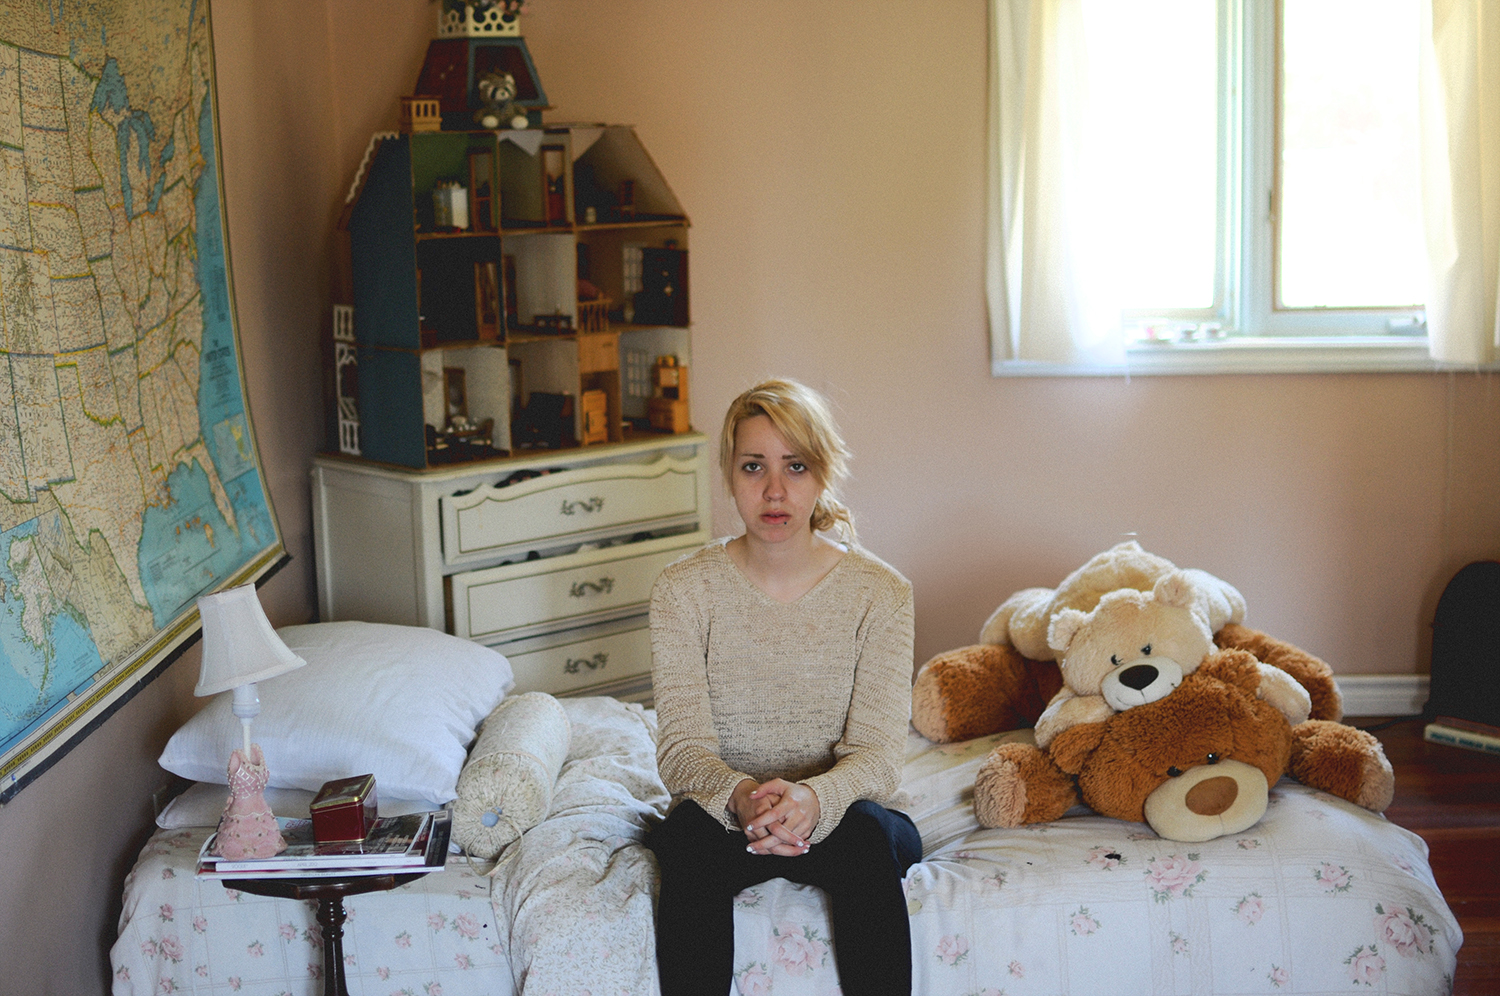 Childhood Bedroom, Age 17,  Erin, Ontario, Canada